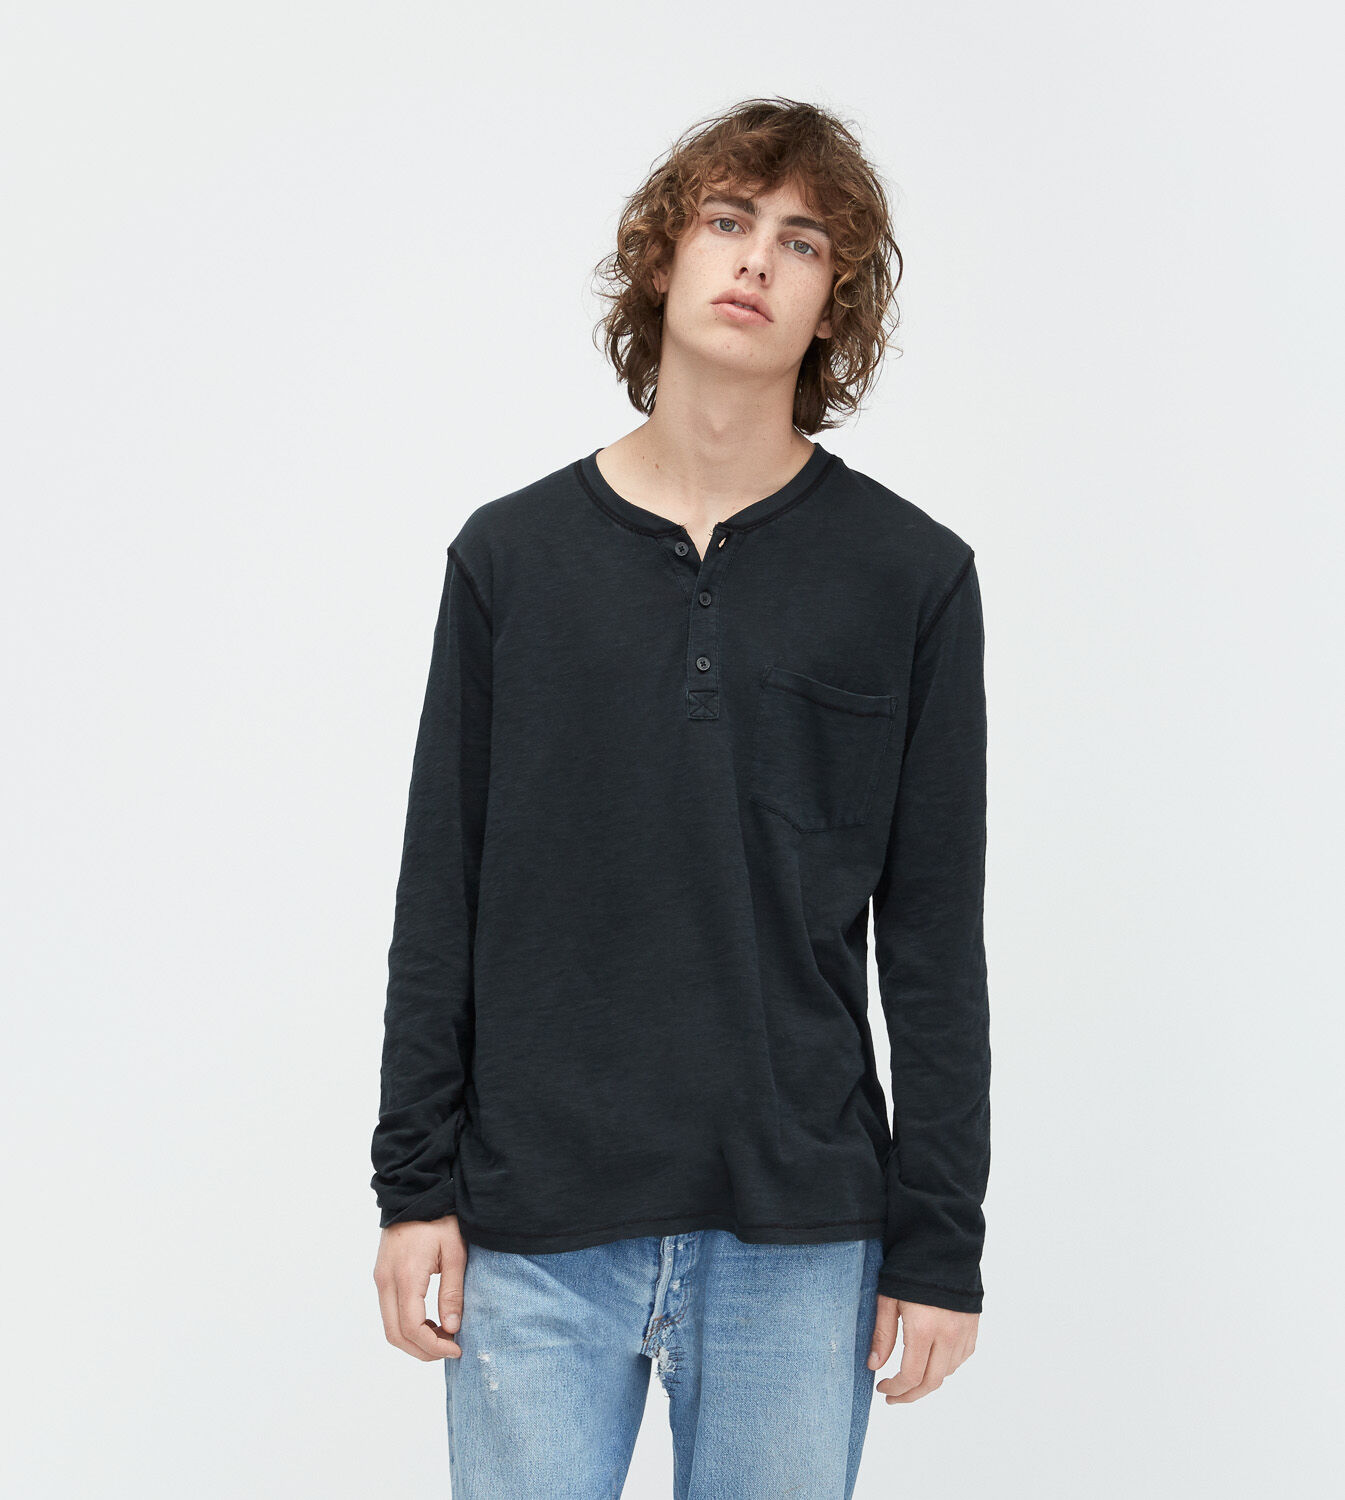 Cheap Factory Outlet UGG® Long Sleeve Henley T-Shirt Free Shipping 100% Authentic Discount Good Selling Clearance Real aF8Iu